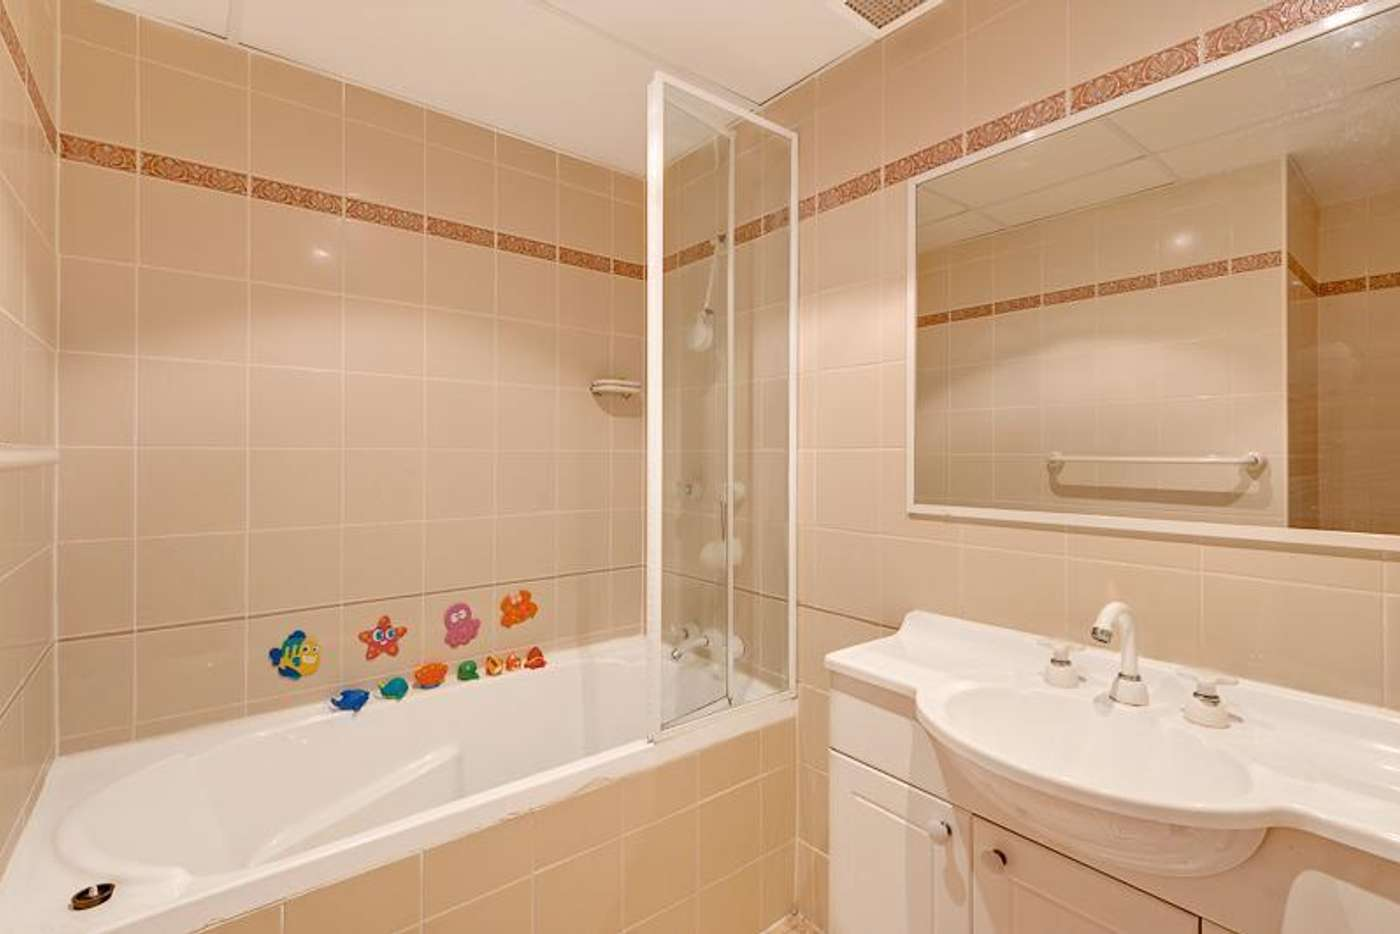 Sixth view of Homely apartment listing, 61/23 George Street, North Strathfield NSW 2137